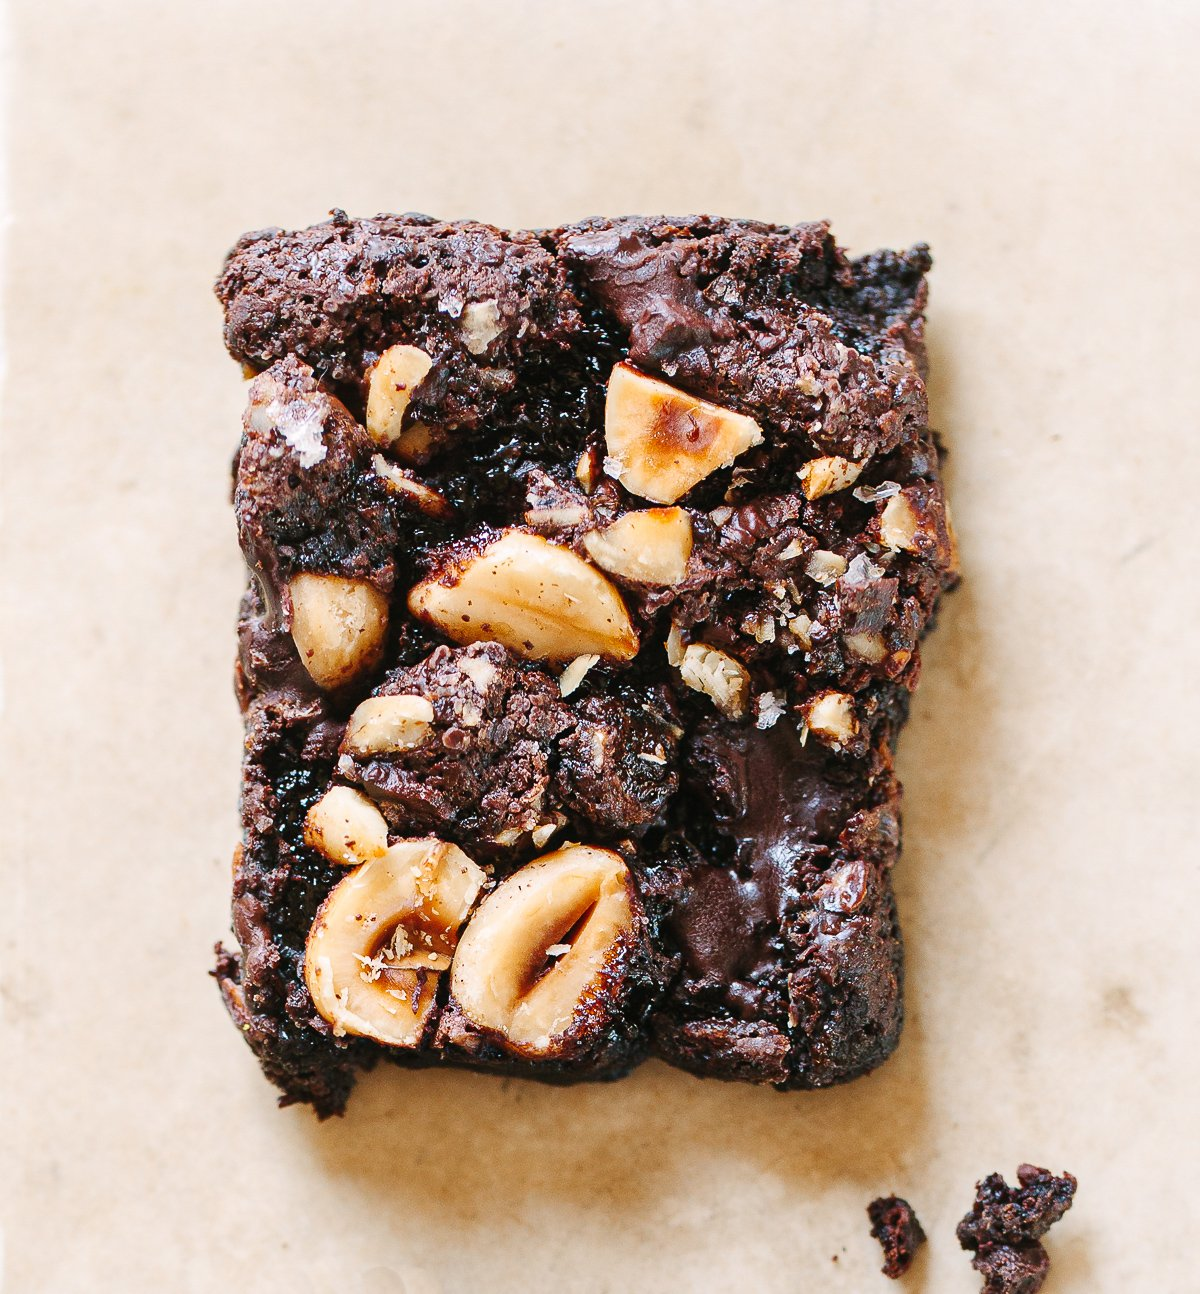 A close up picture of a a chocolate hazelnut brownie square, with gooey melted chocolate on top.